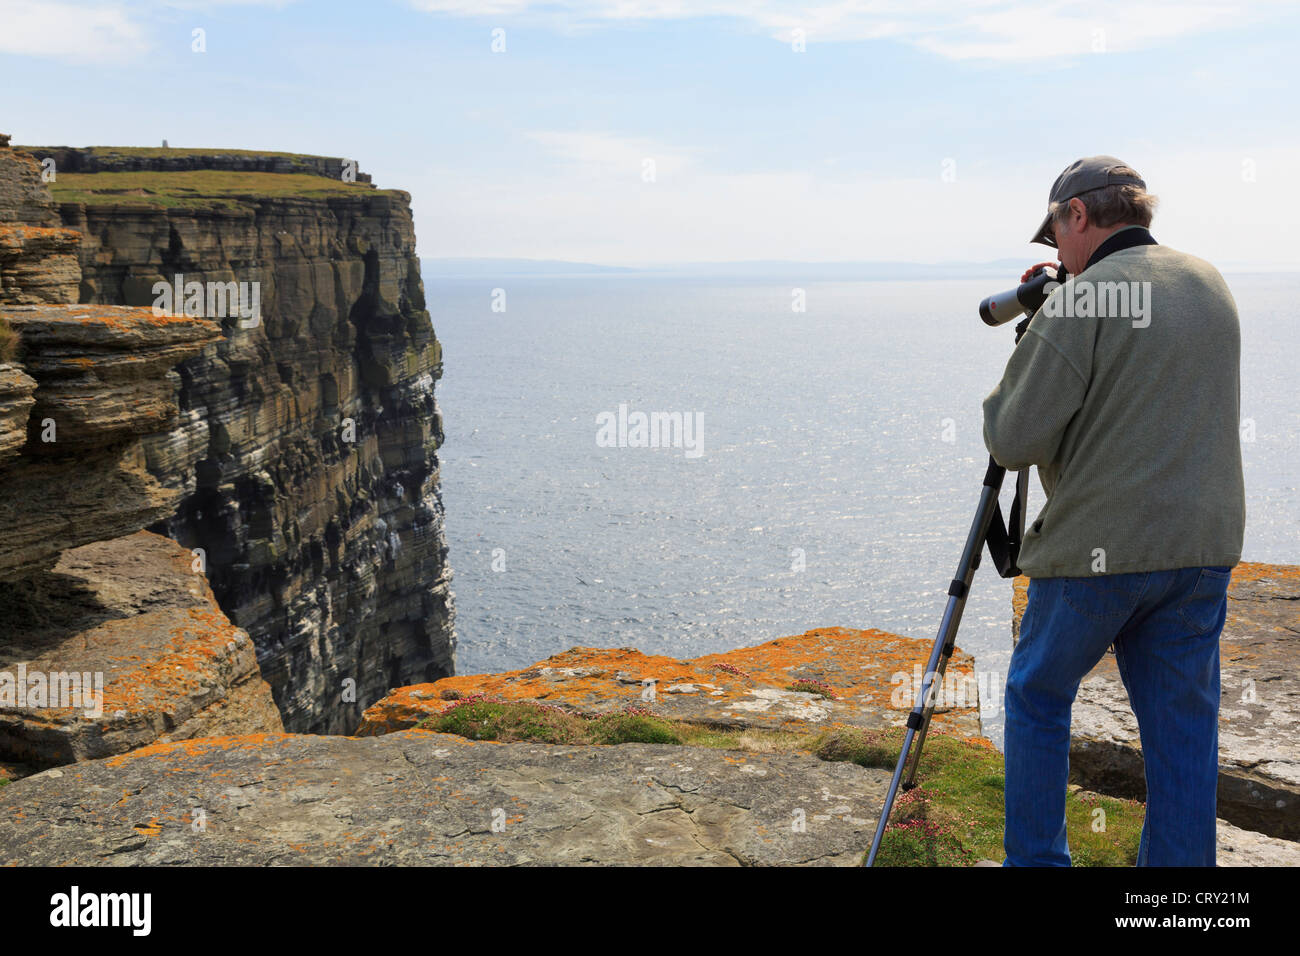 Birdwatcher using a telescope to watch Puffins and seabirds nesting on seacliffs  Noup Head Westray Island Orkney - Stock Image